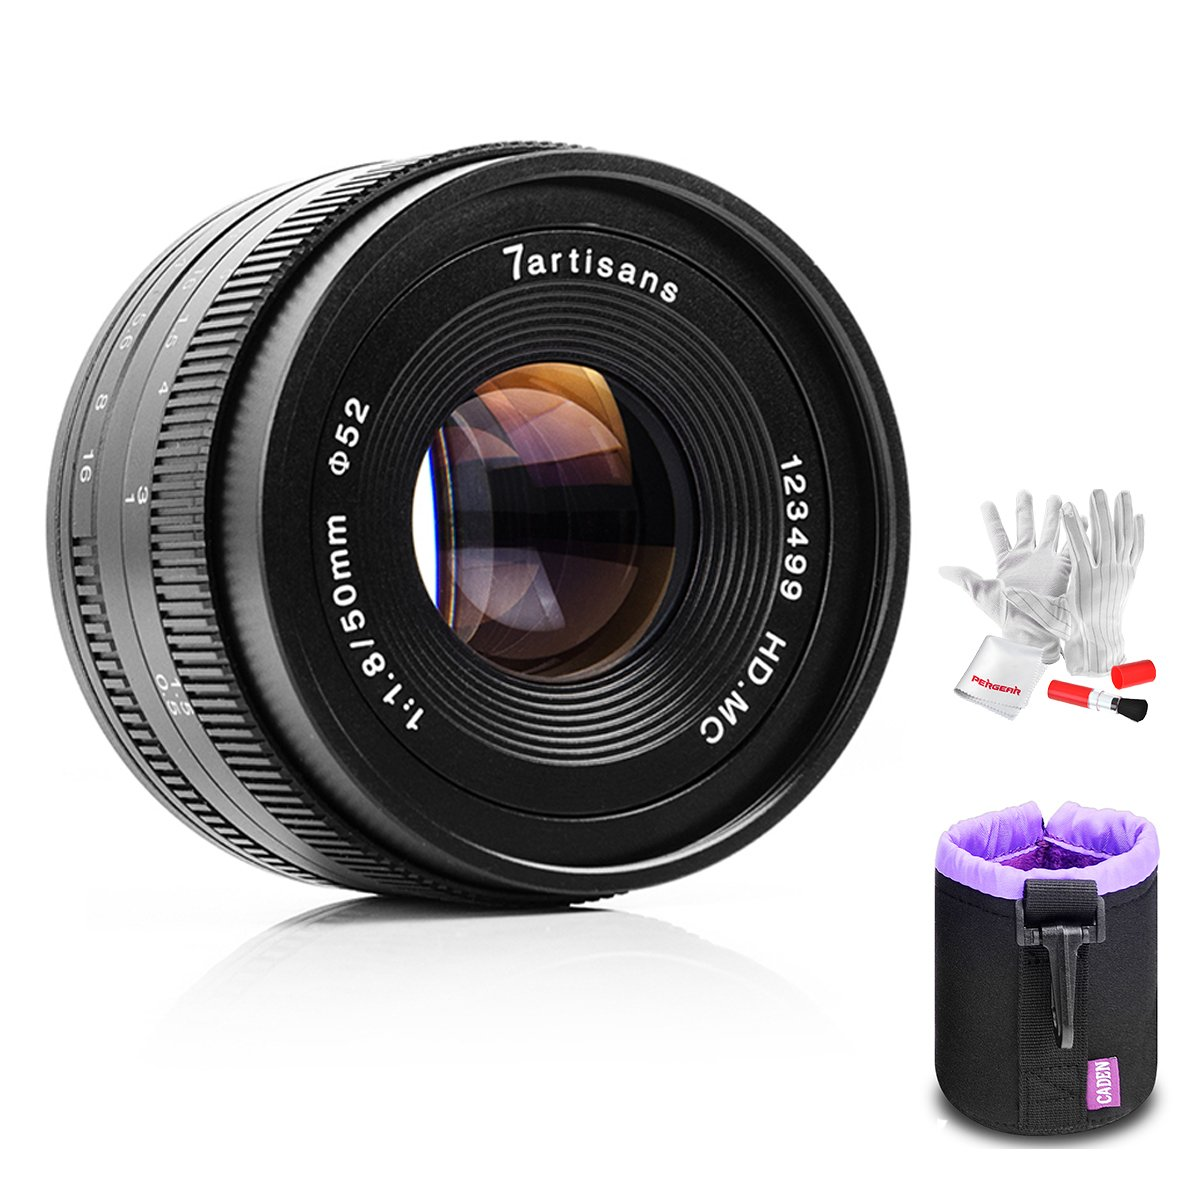 7artisans 50mm F1.8 APS-C Manual Fixed Lens for Olympus Panasonic Micro Four Thirds MFT M4/3 Mirrorless Cameras,Multi-Layer Coating,All Metal Body with Lens Bag, Pergear Cloth by 7artisans